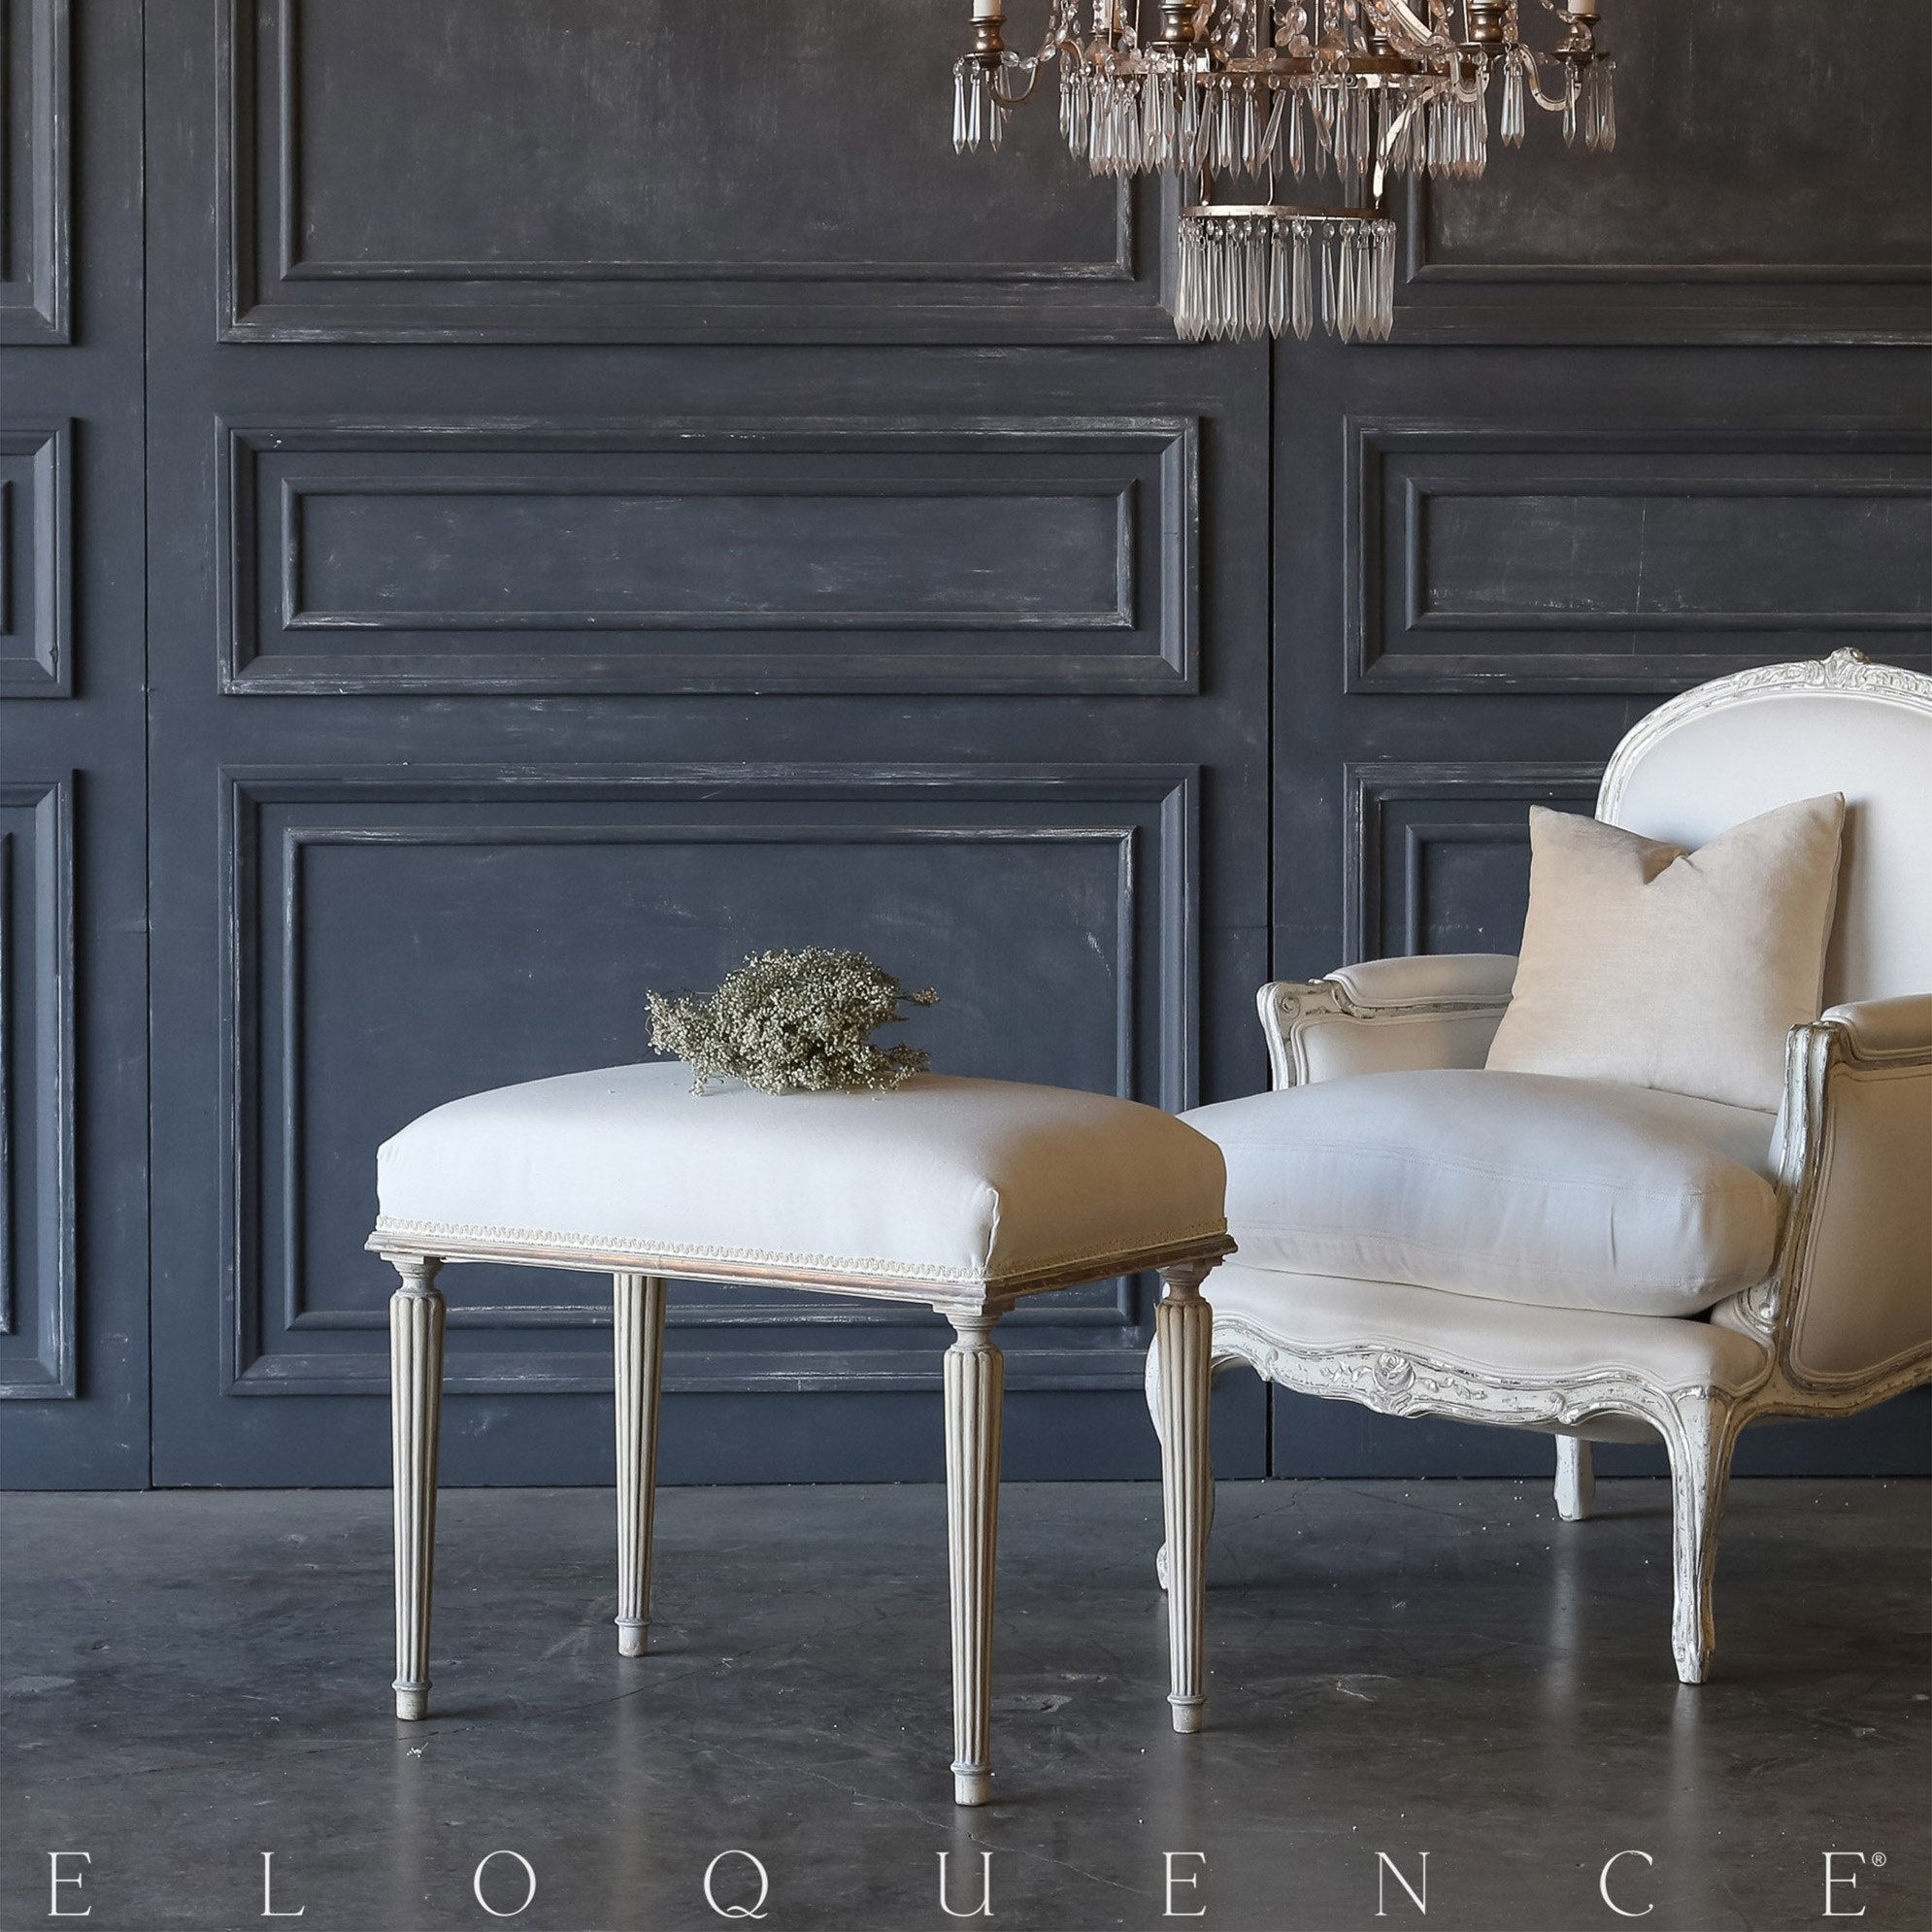 Eloquence® Vintage Antique White Louis Bench: 1940